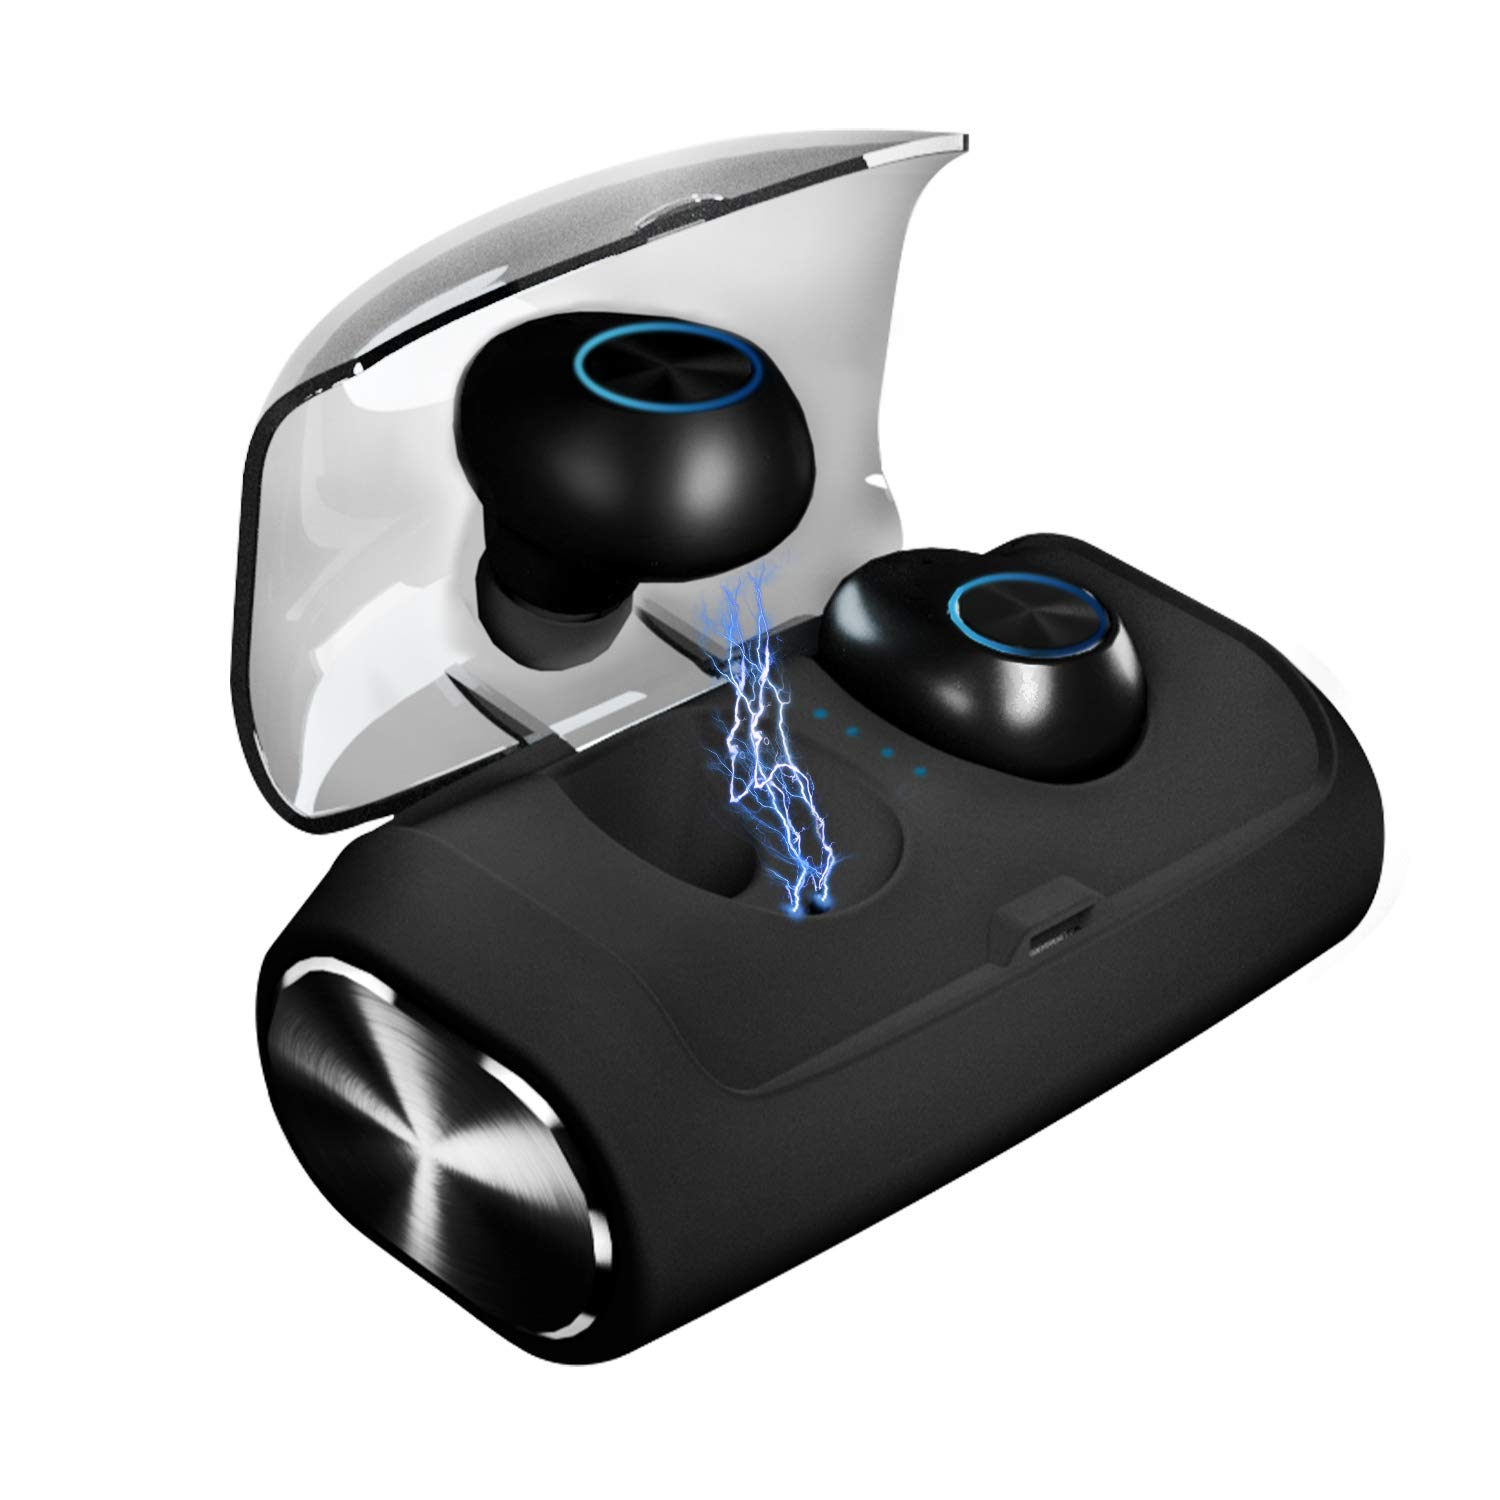 True Wireless Earbuds,Bluetooth 5.0 Headphones 100H Playtime 2600mAh Charging Case Earphones One Step Pairing Bluetooth Earbuds Waterproof Stereo Sound Single Twin Mode with Built-in Mic